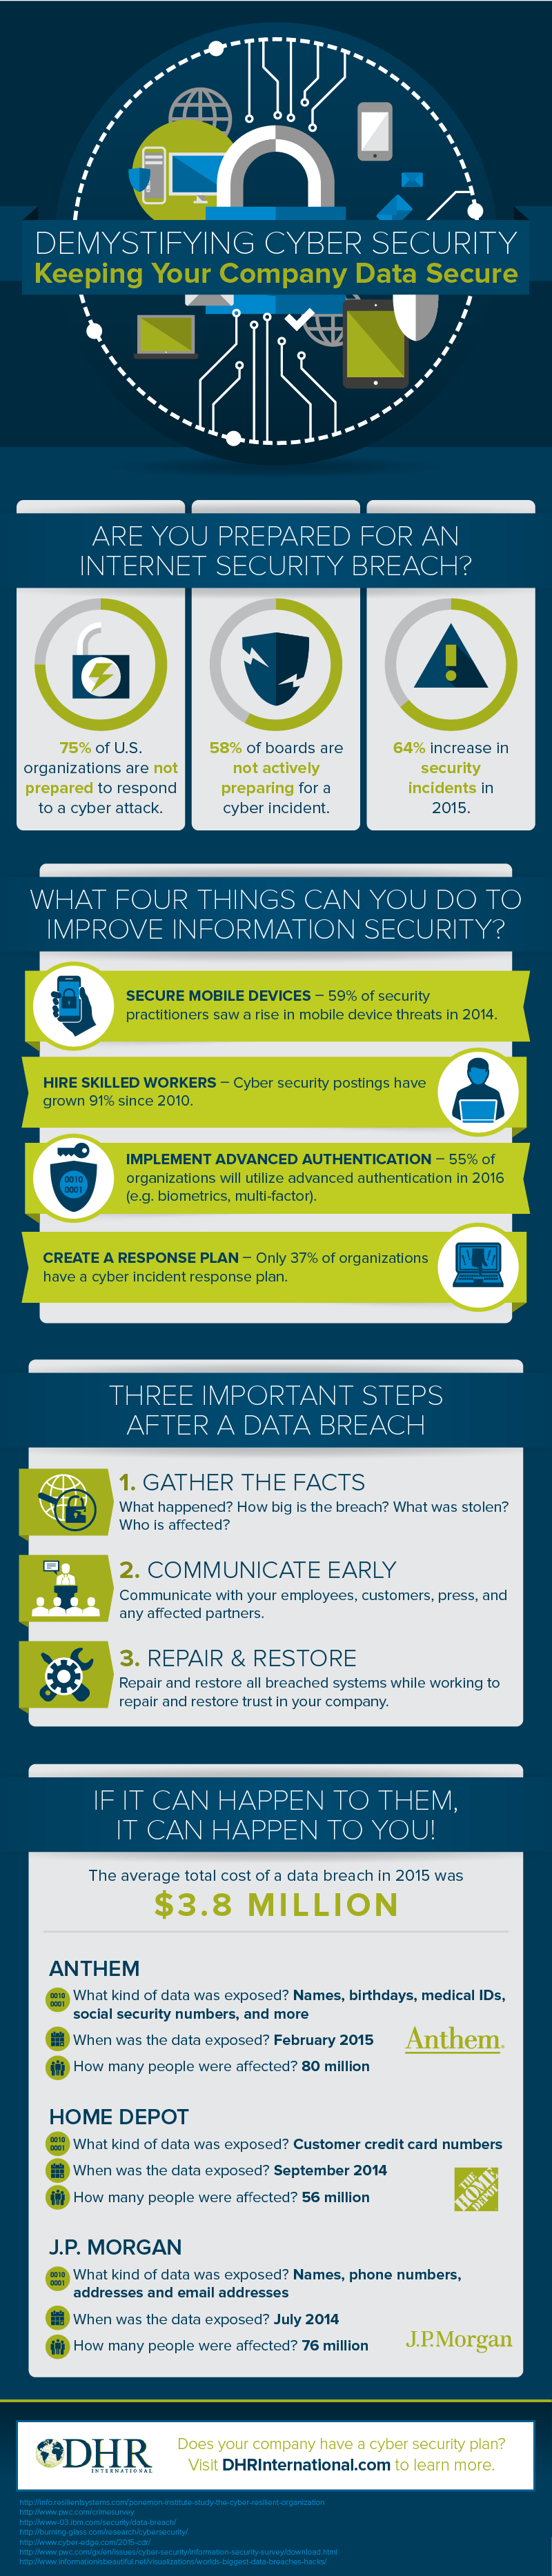 dhr-international-cyber-security-infographic